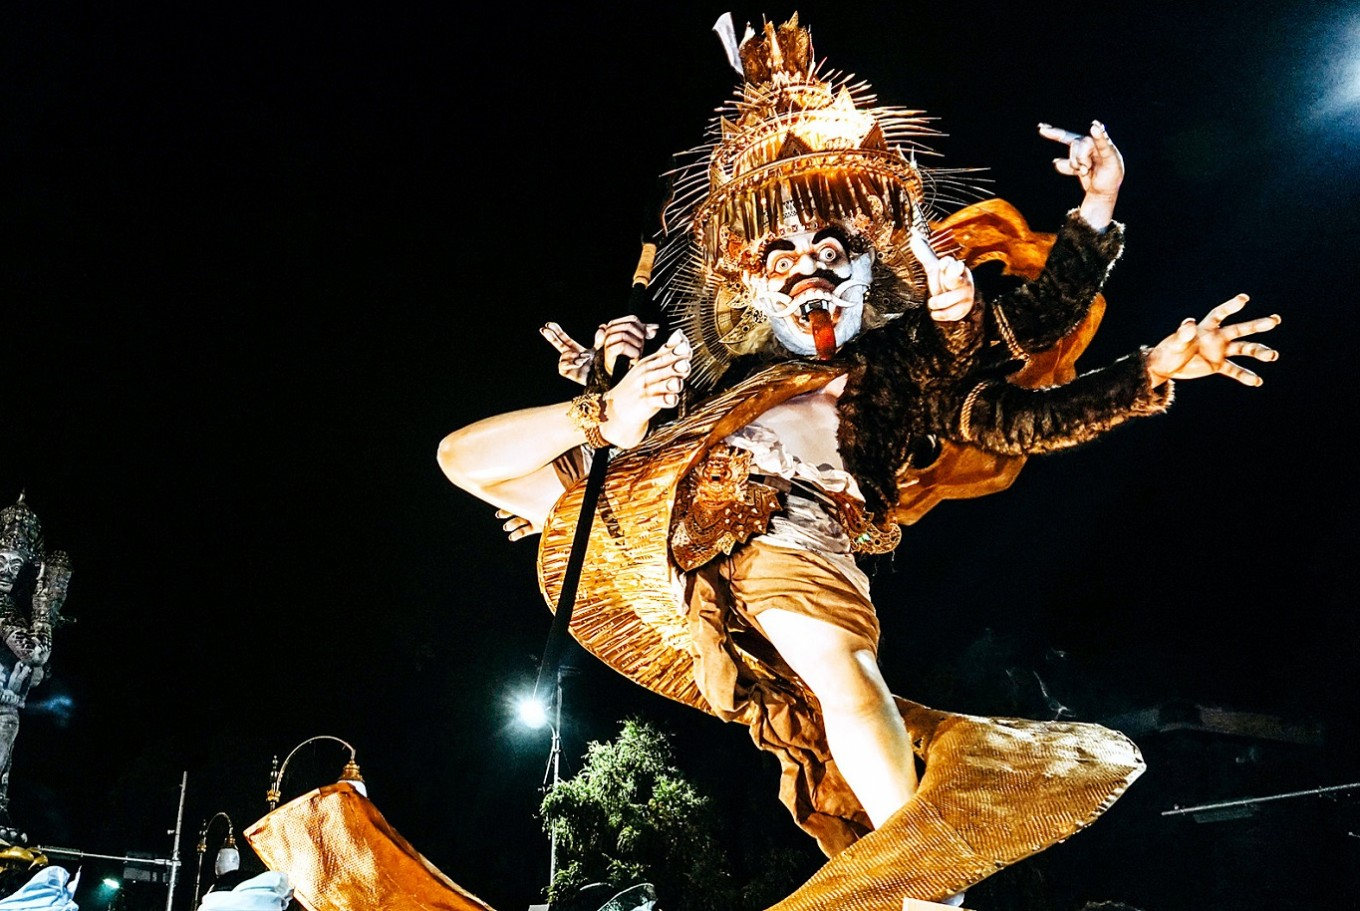 Bali's biggest street party